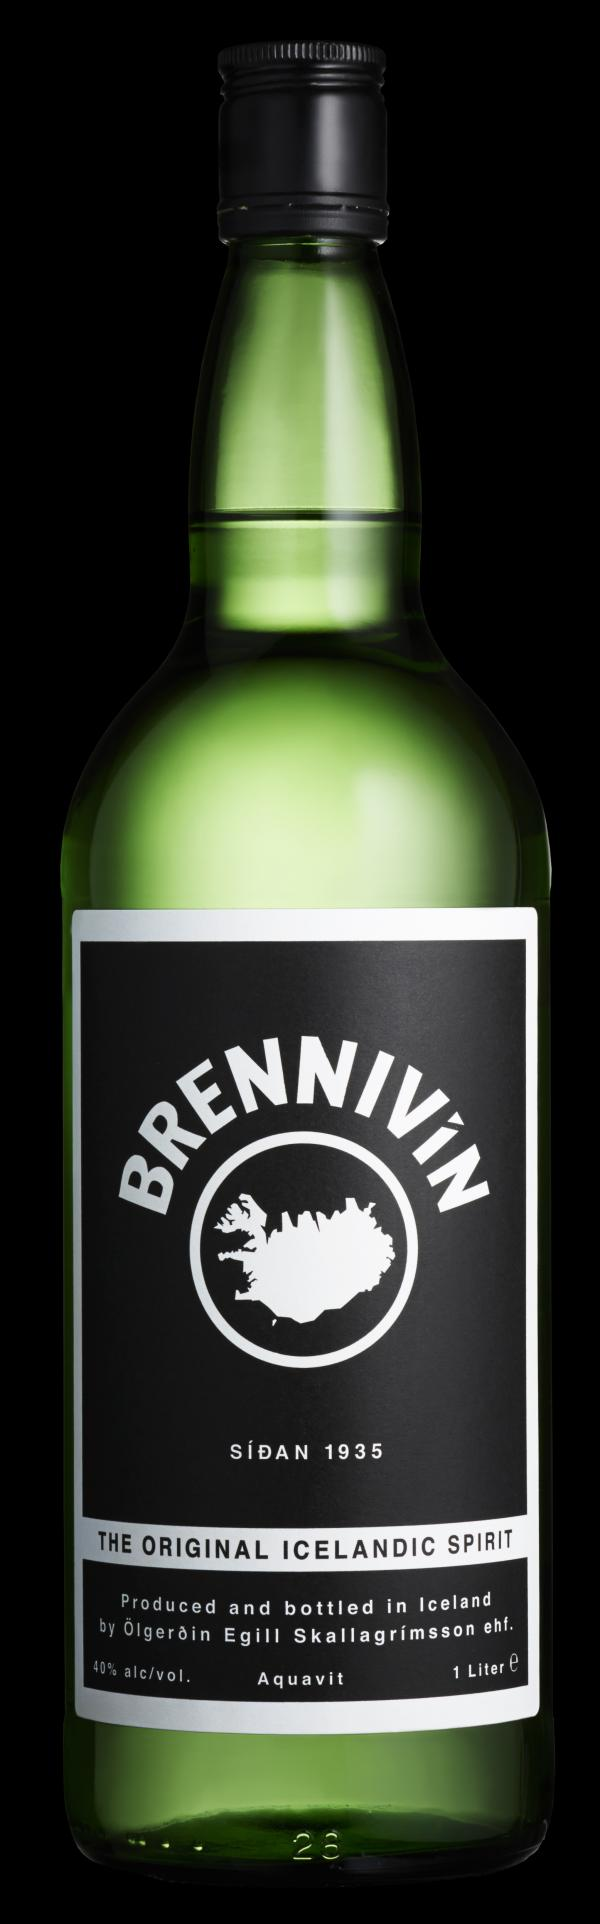 imagebrennivin-eng-dry_on_black.jpg